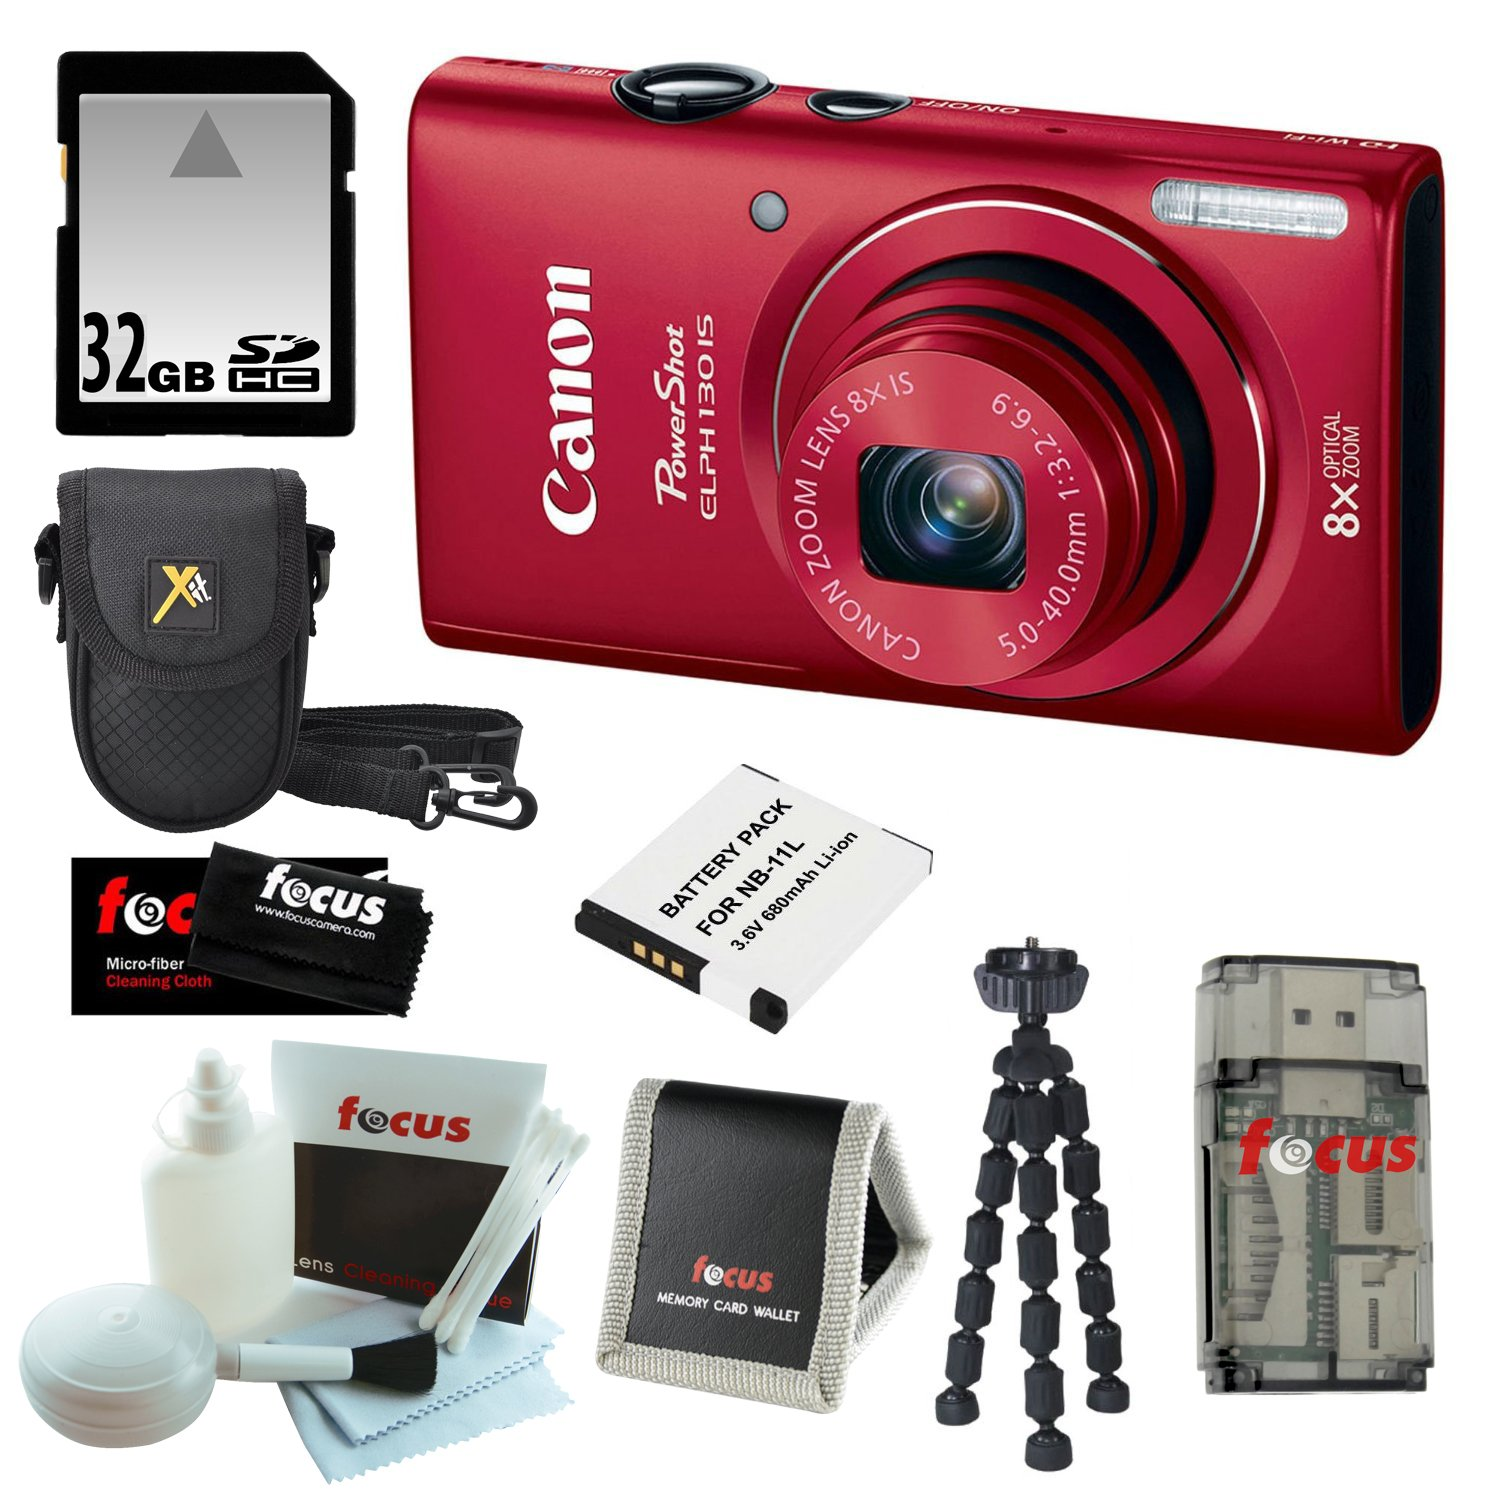 Canon PowerShot ELPH 130 IS 16.0MP Wi-Fi Digital Camera - Red + 32GB Memory Card + Accessories at Sears.com